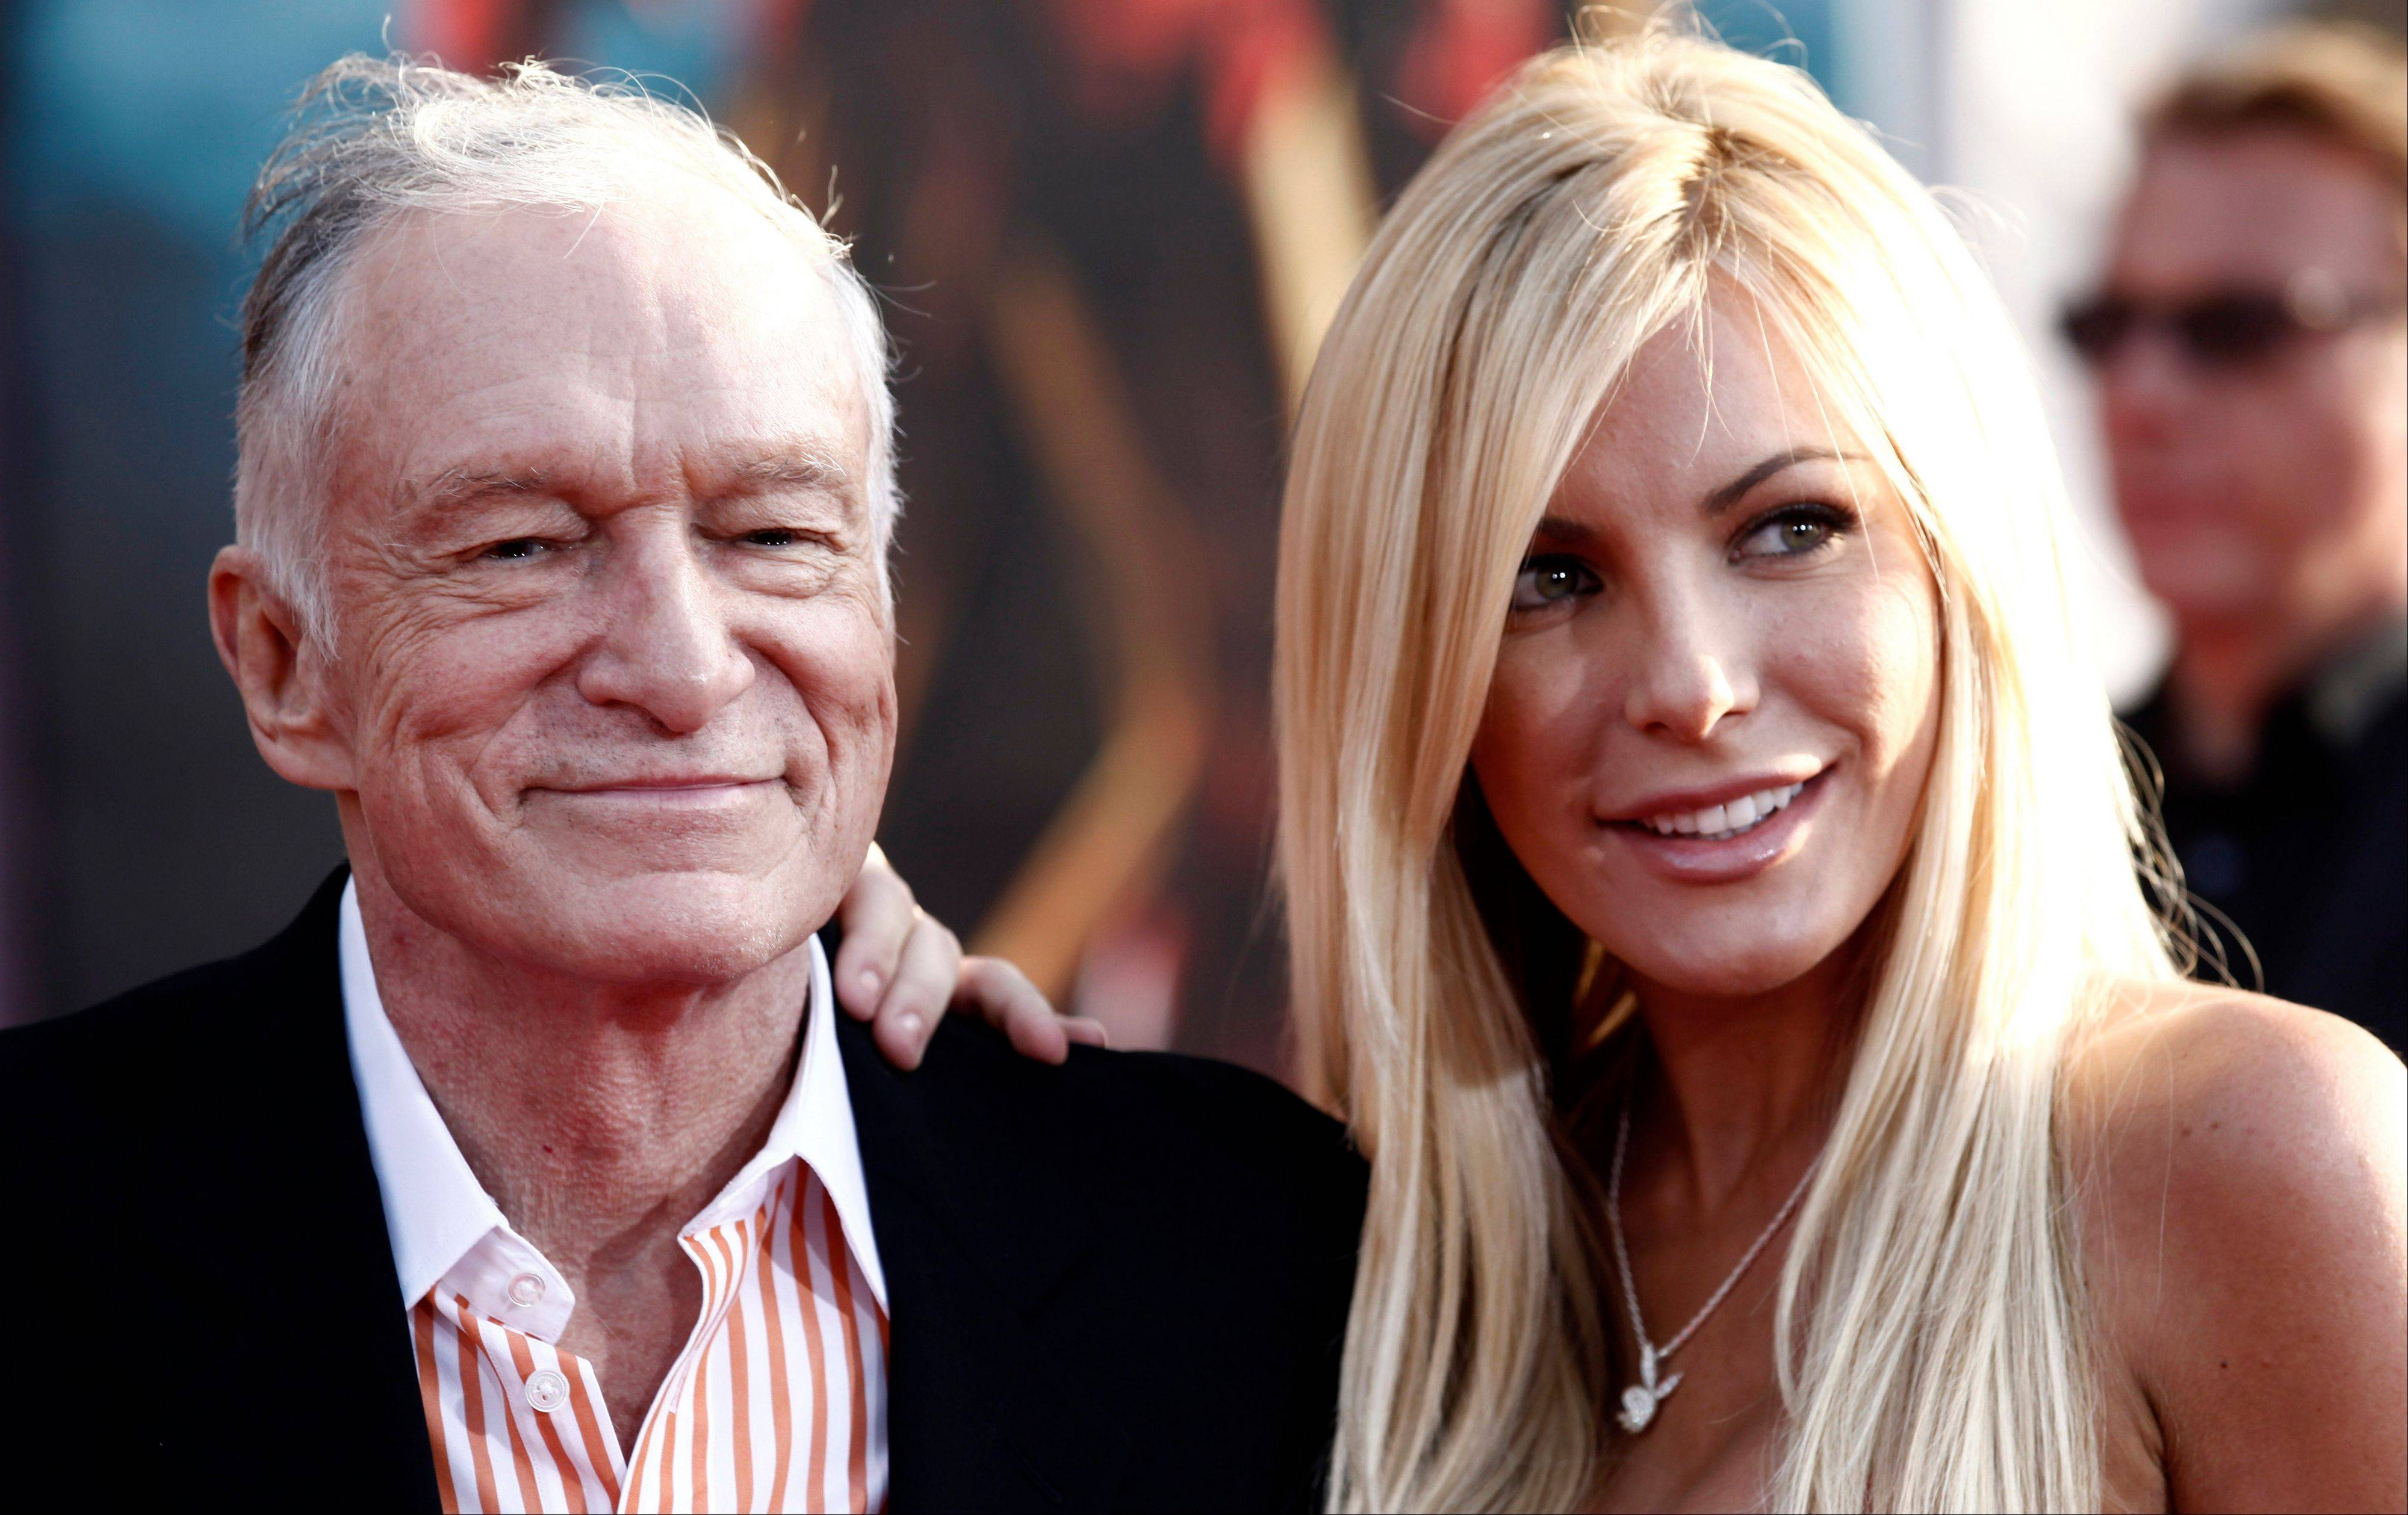 Hugh Hefner and Crystal Harris exchanged vows at a private Playboy Mansion ceremony on New Year's Eve.